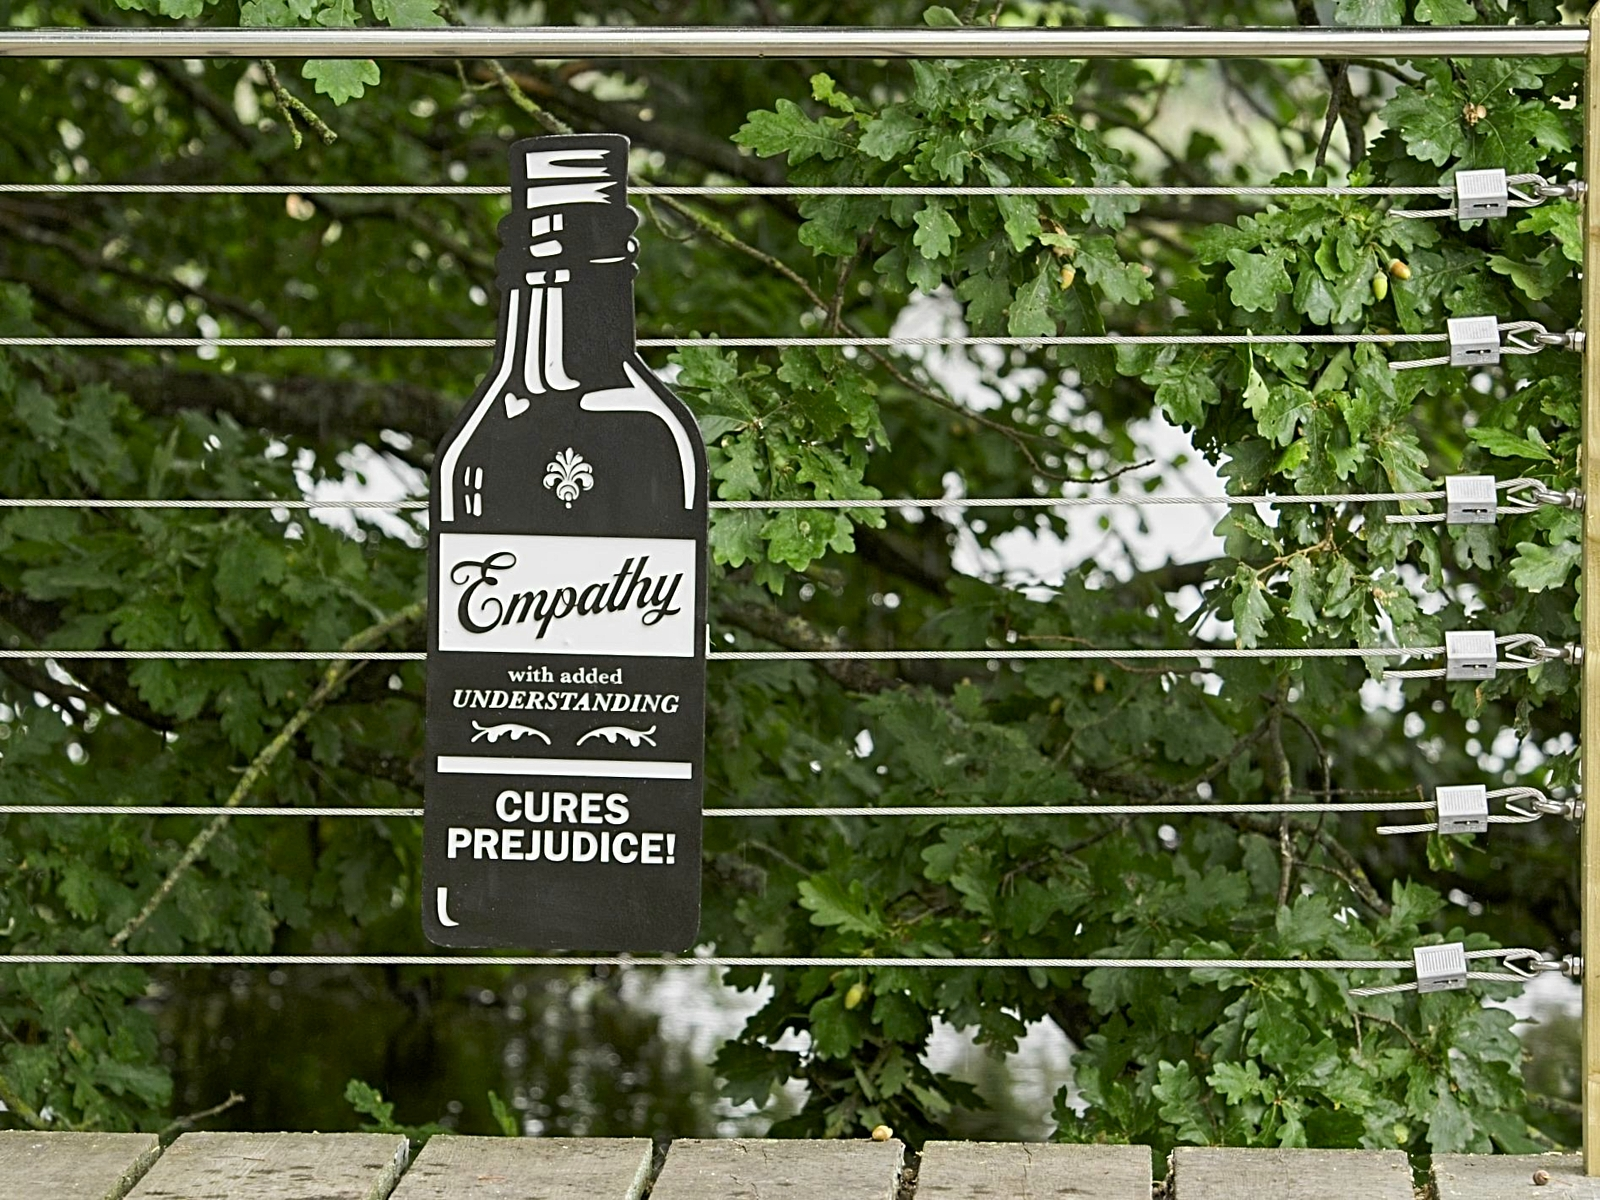 A wooden walkway next to trees and bushes. With a wire and wooden fence along the edge. Attached to the wires is a bottle-shaped sign saying